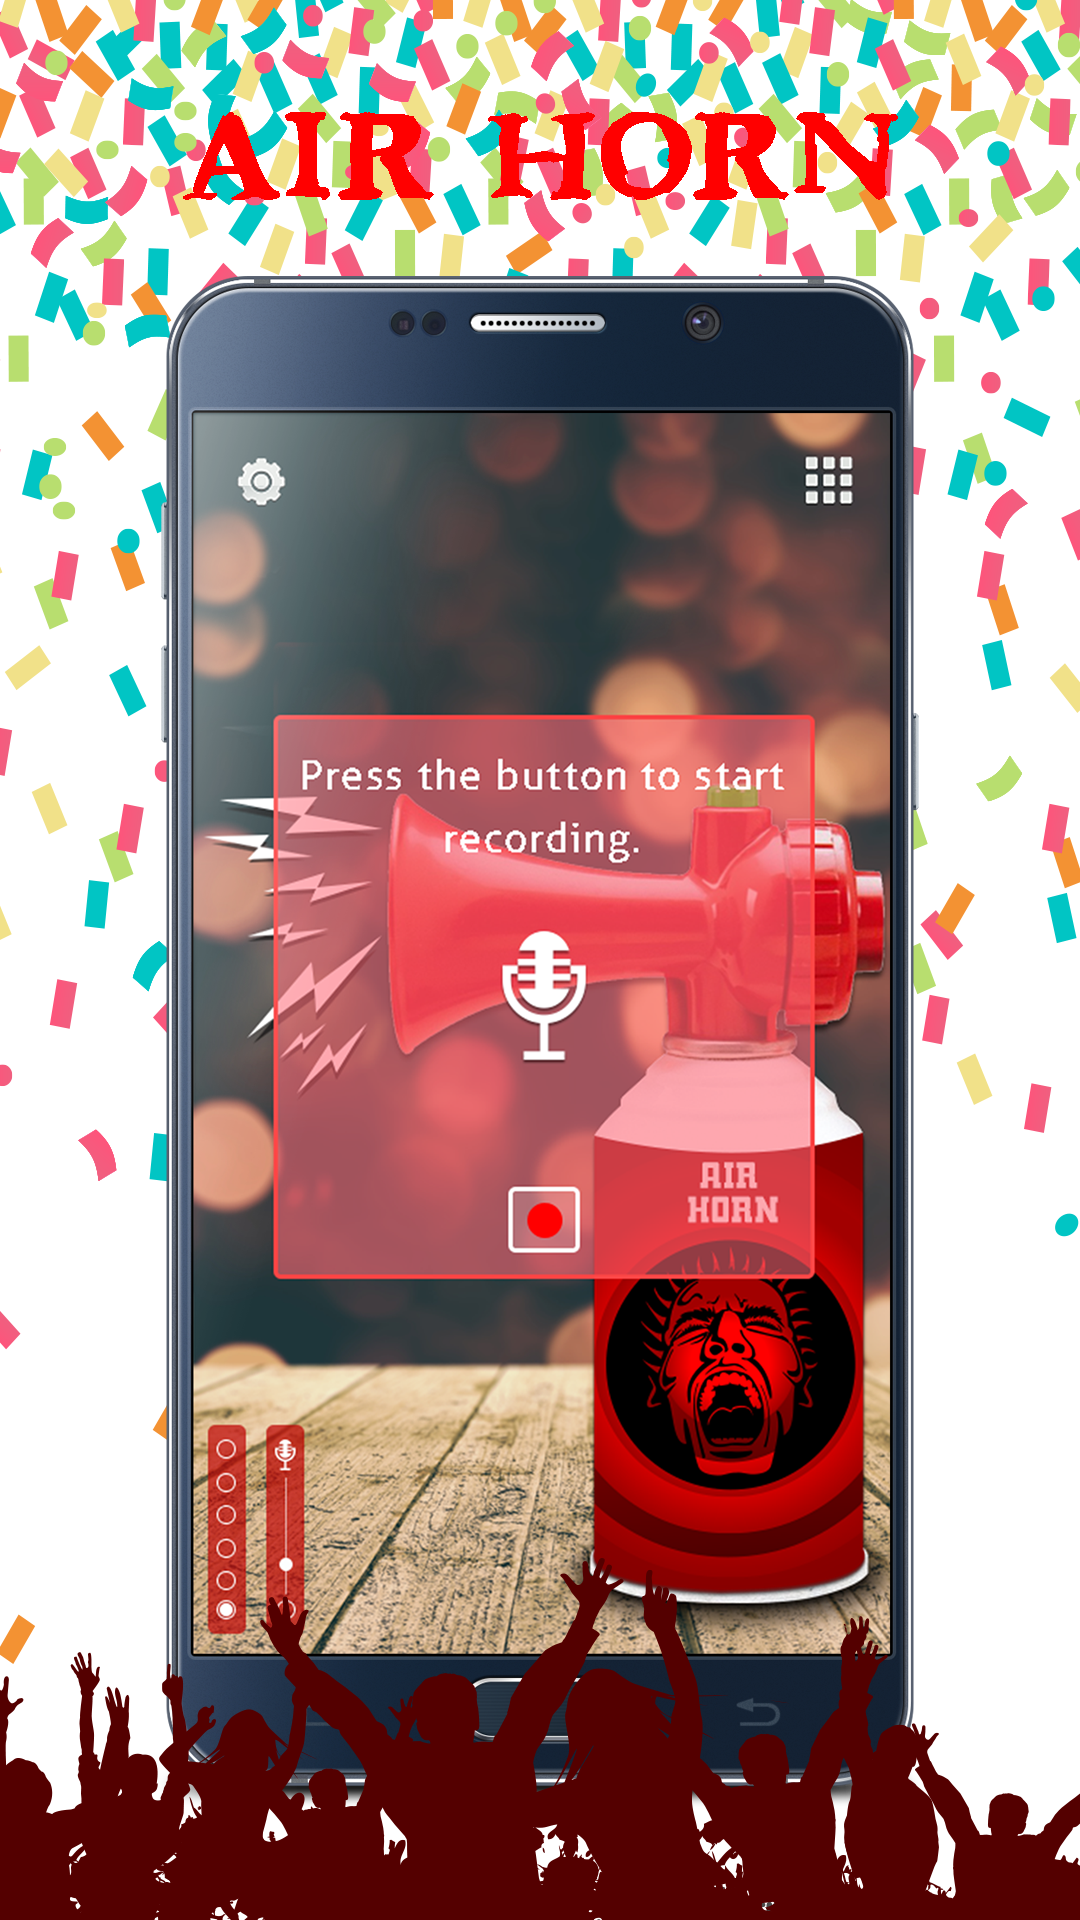 Real Loud Air Horn: Amazon co uk: Appstore for Android